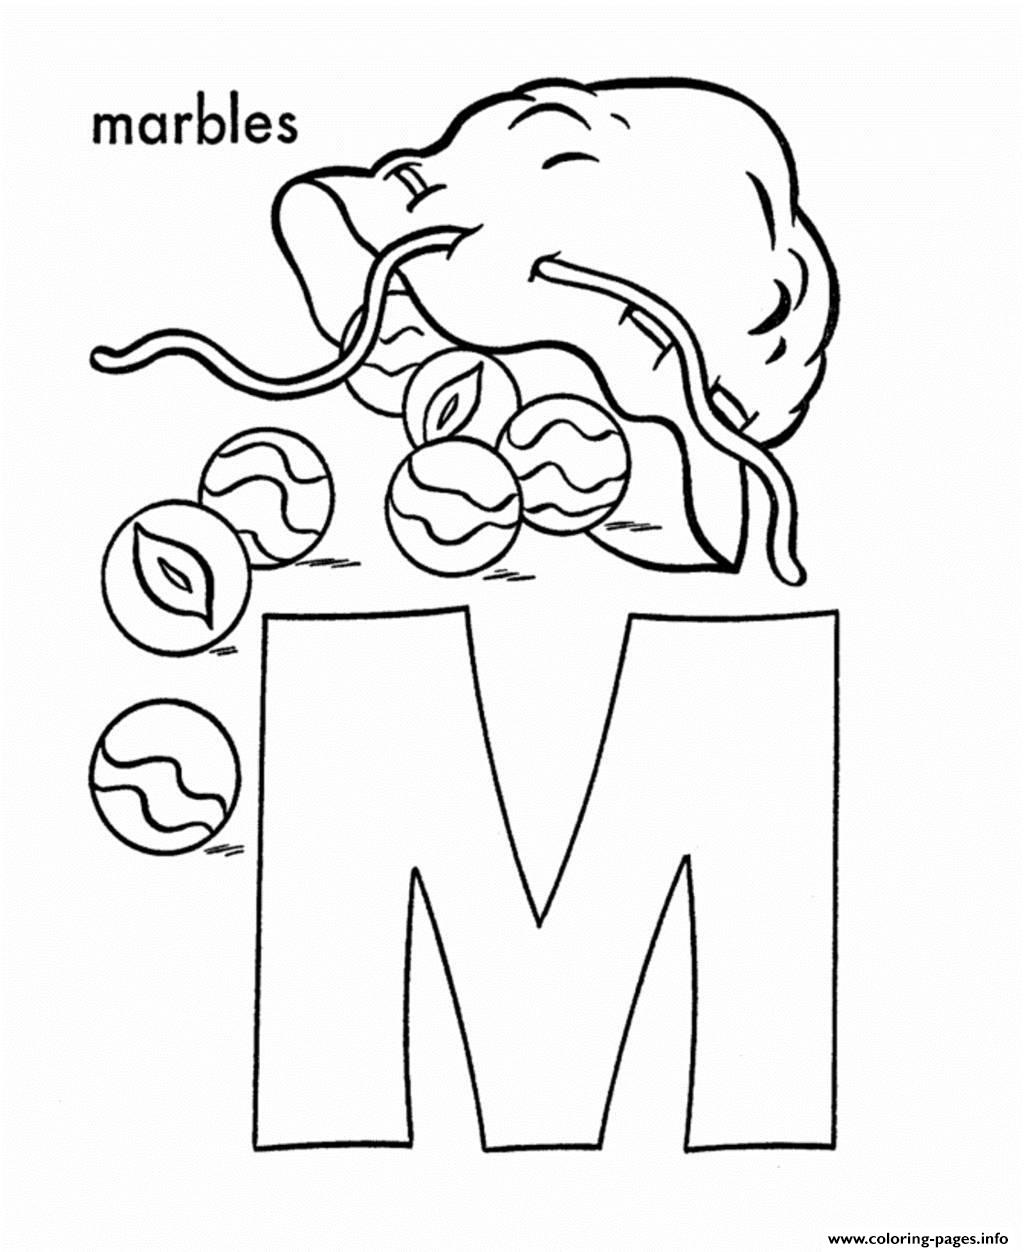 Free Alphabet S M For Marbles496b Coloring Pages Printable